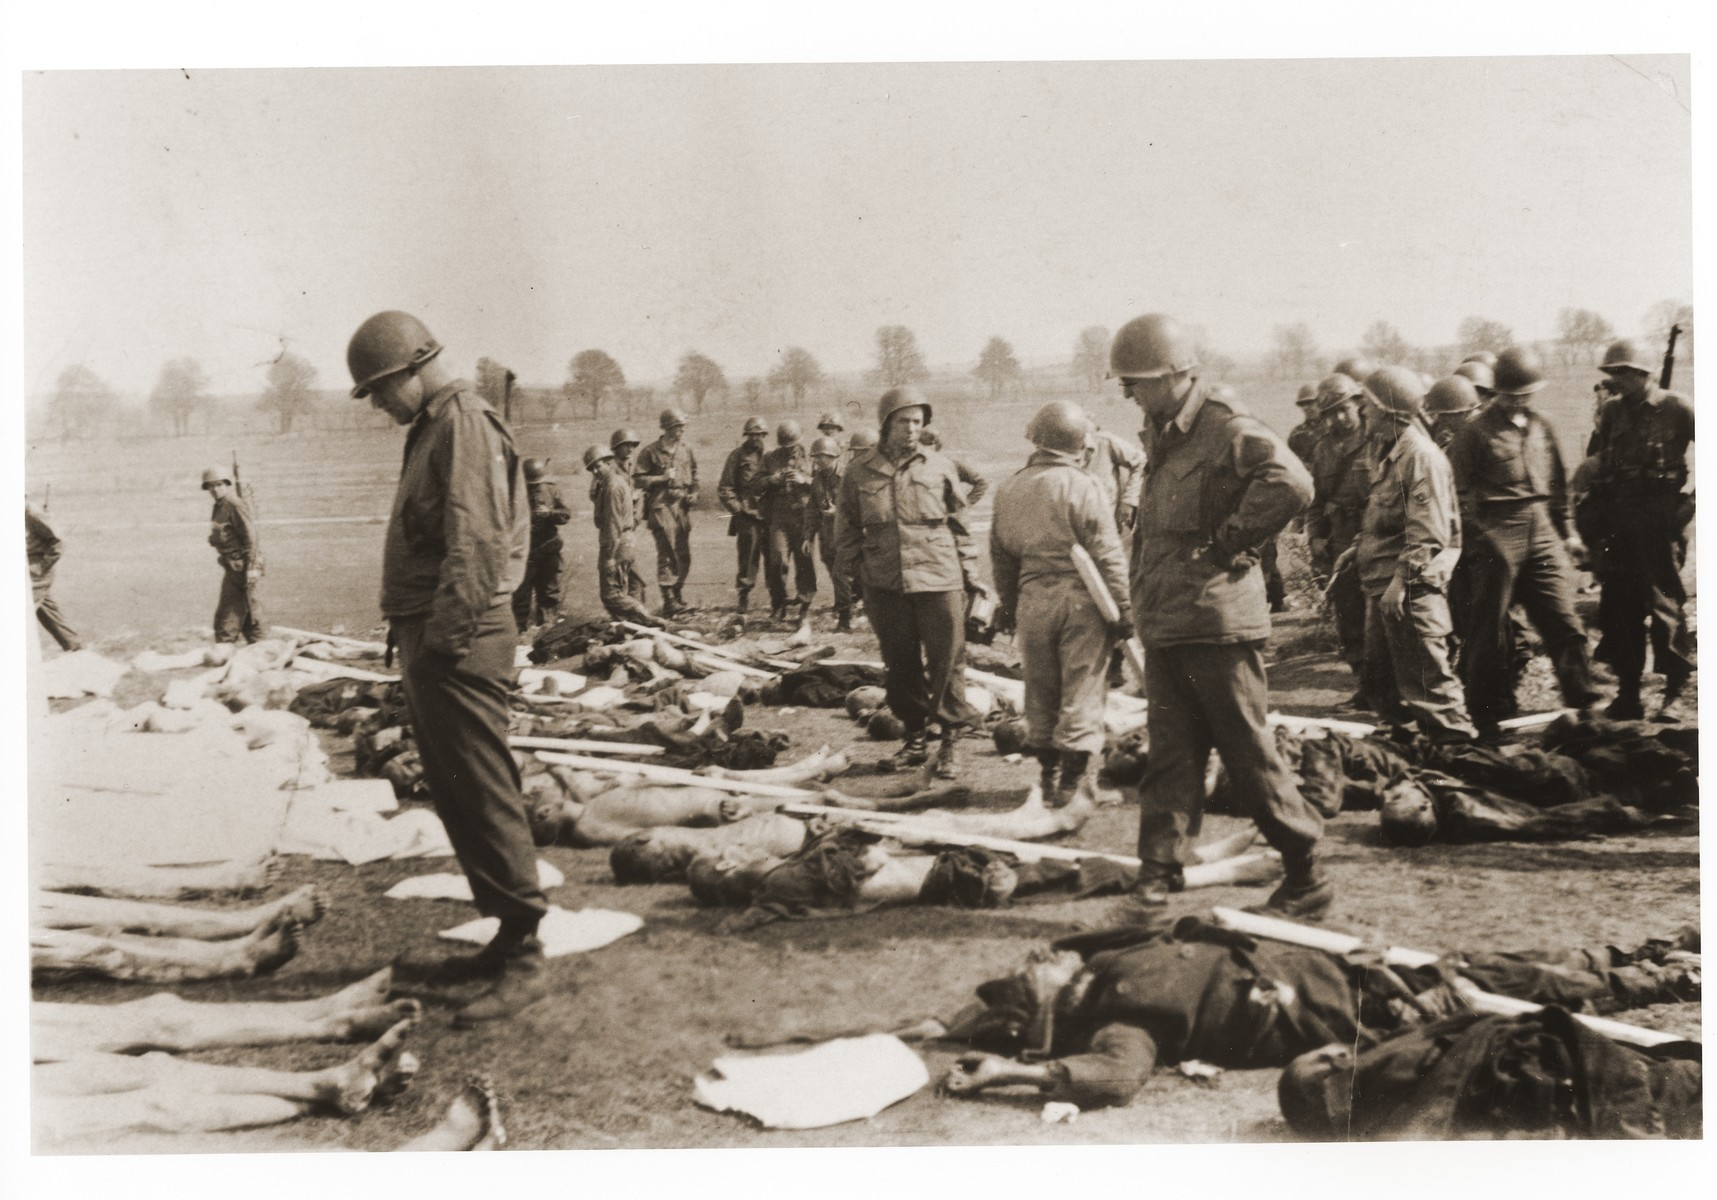 American soldiers view the bodies of prisoners laid out in rows in an open field in the Ohrdruf concentration camp.